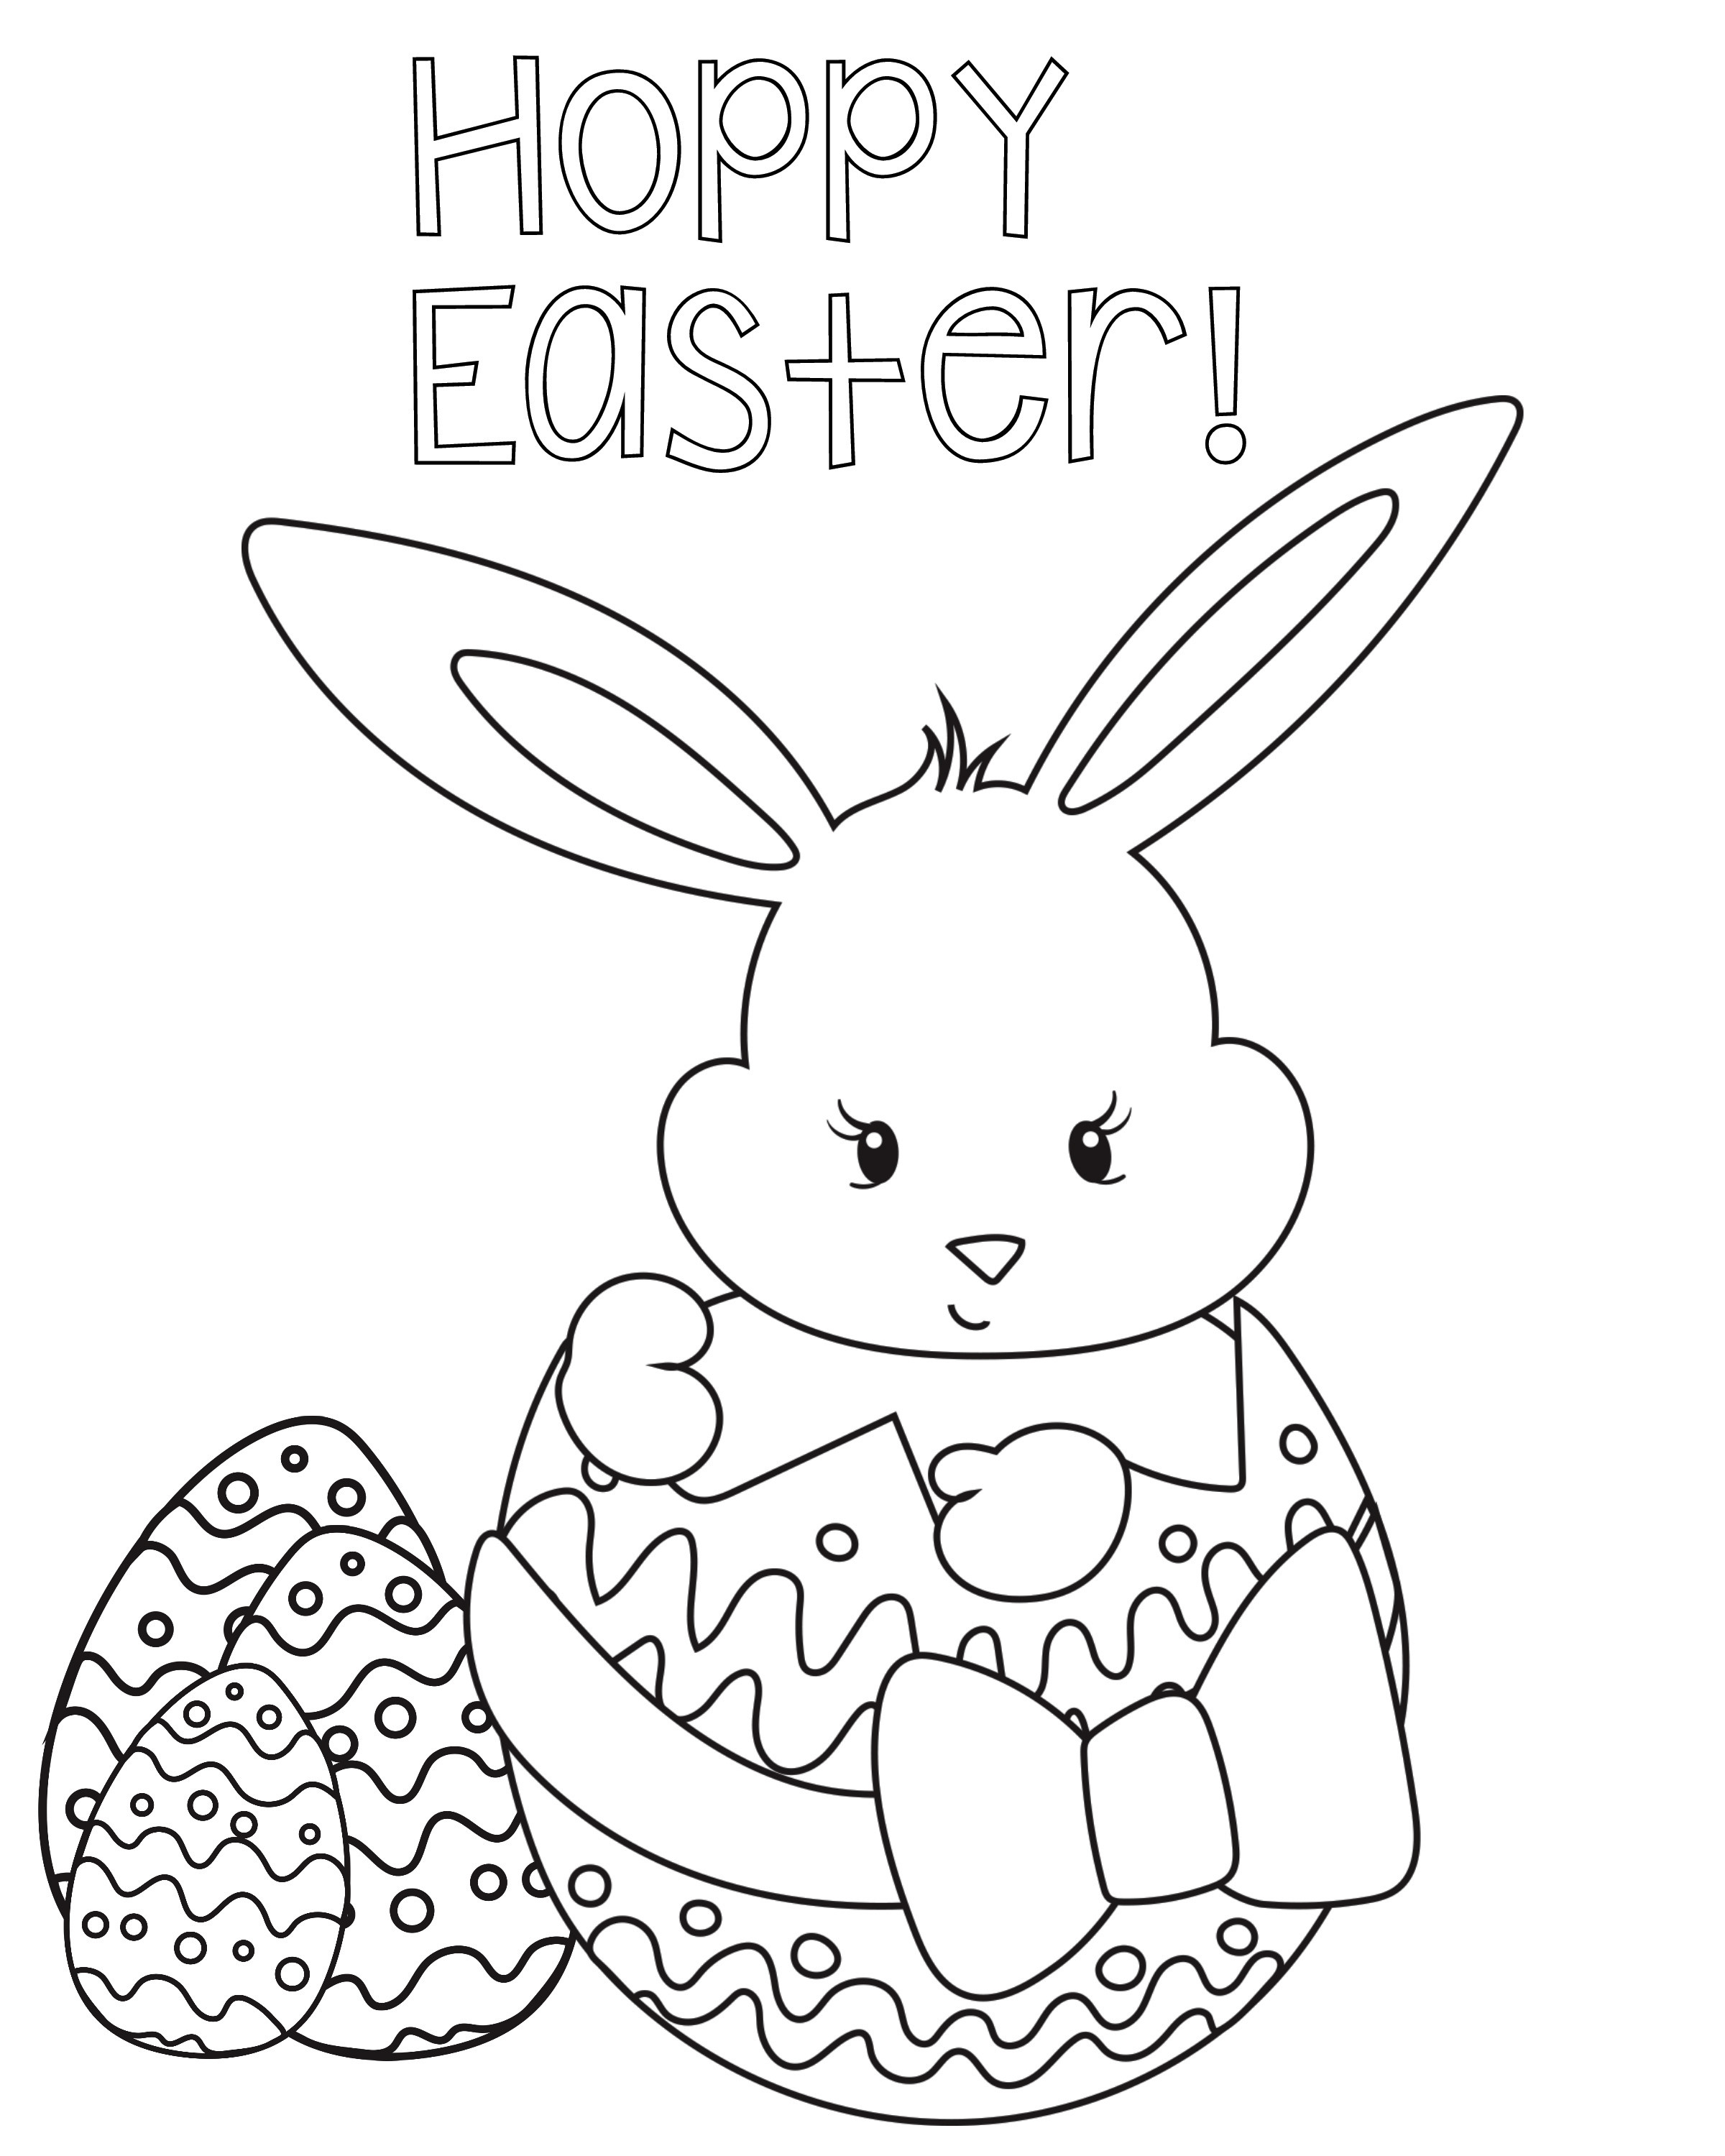 Printable Coloring Sheets Free  Happy Easter Coloring Pages Best Coloring Pages For Kids